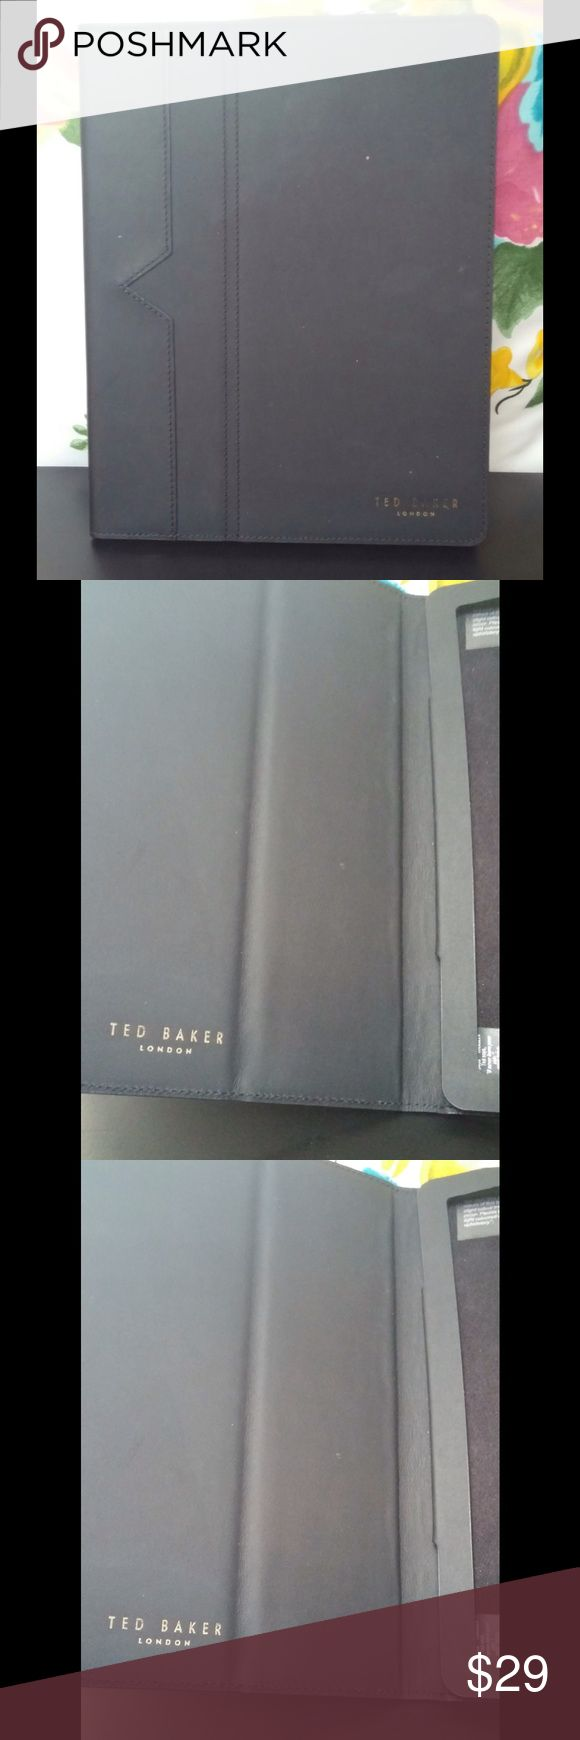 Ted Baker IPad 2/3 THELINE Tablet Folio Black Ted Baker IPad 2/3 Generation Cover Folio Black.  Sleek , Black, Smooth,  with the Ted Baker logo on the inside as well.  This is a beautiful cover. Ted Baker Bags Laptop Bags